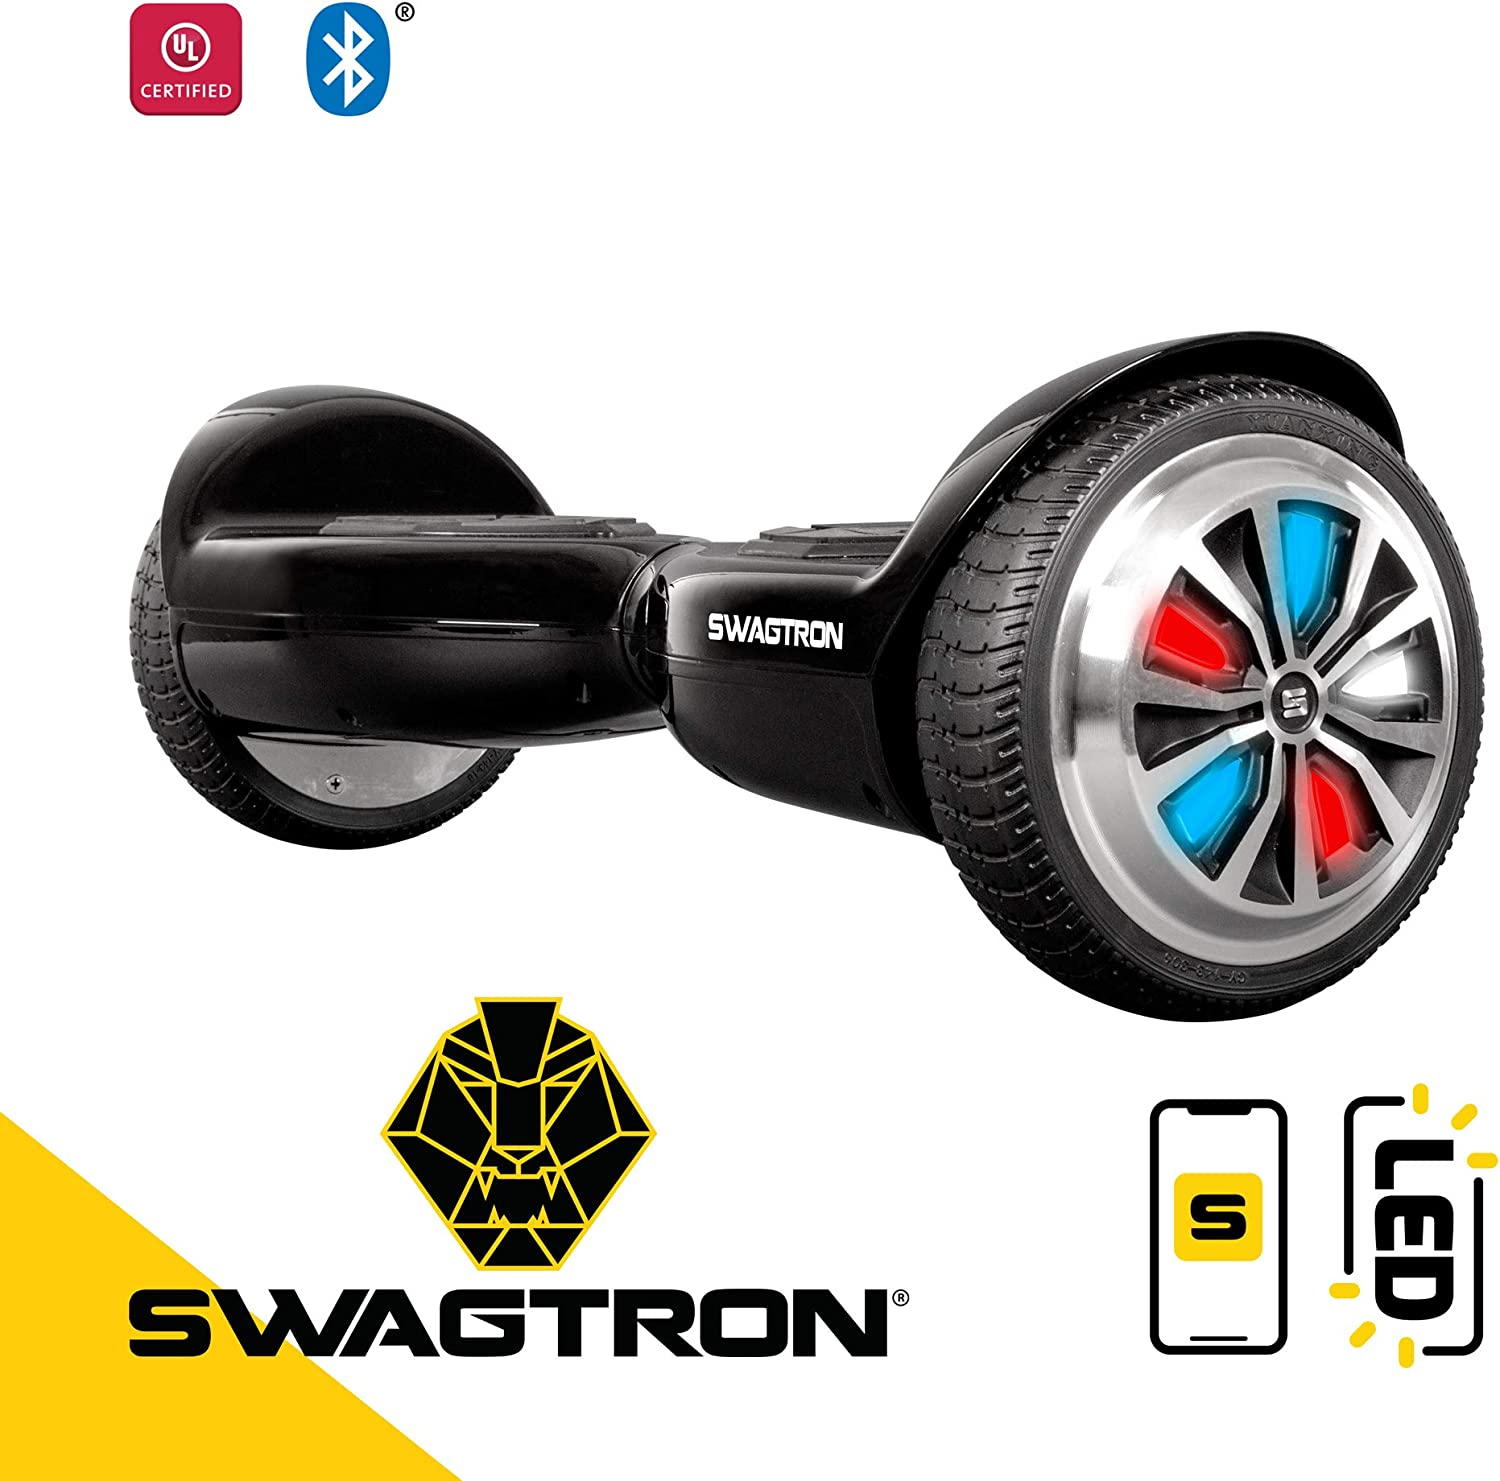 Swagtron Swagboard Hoverboard for Kids and Young Adults Black LED / US